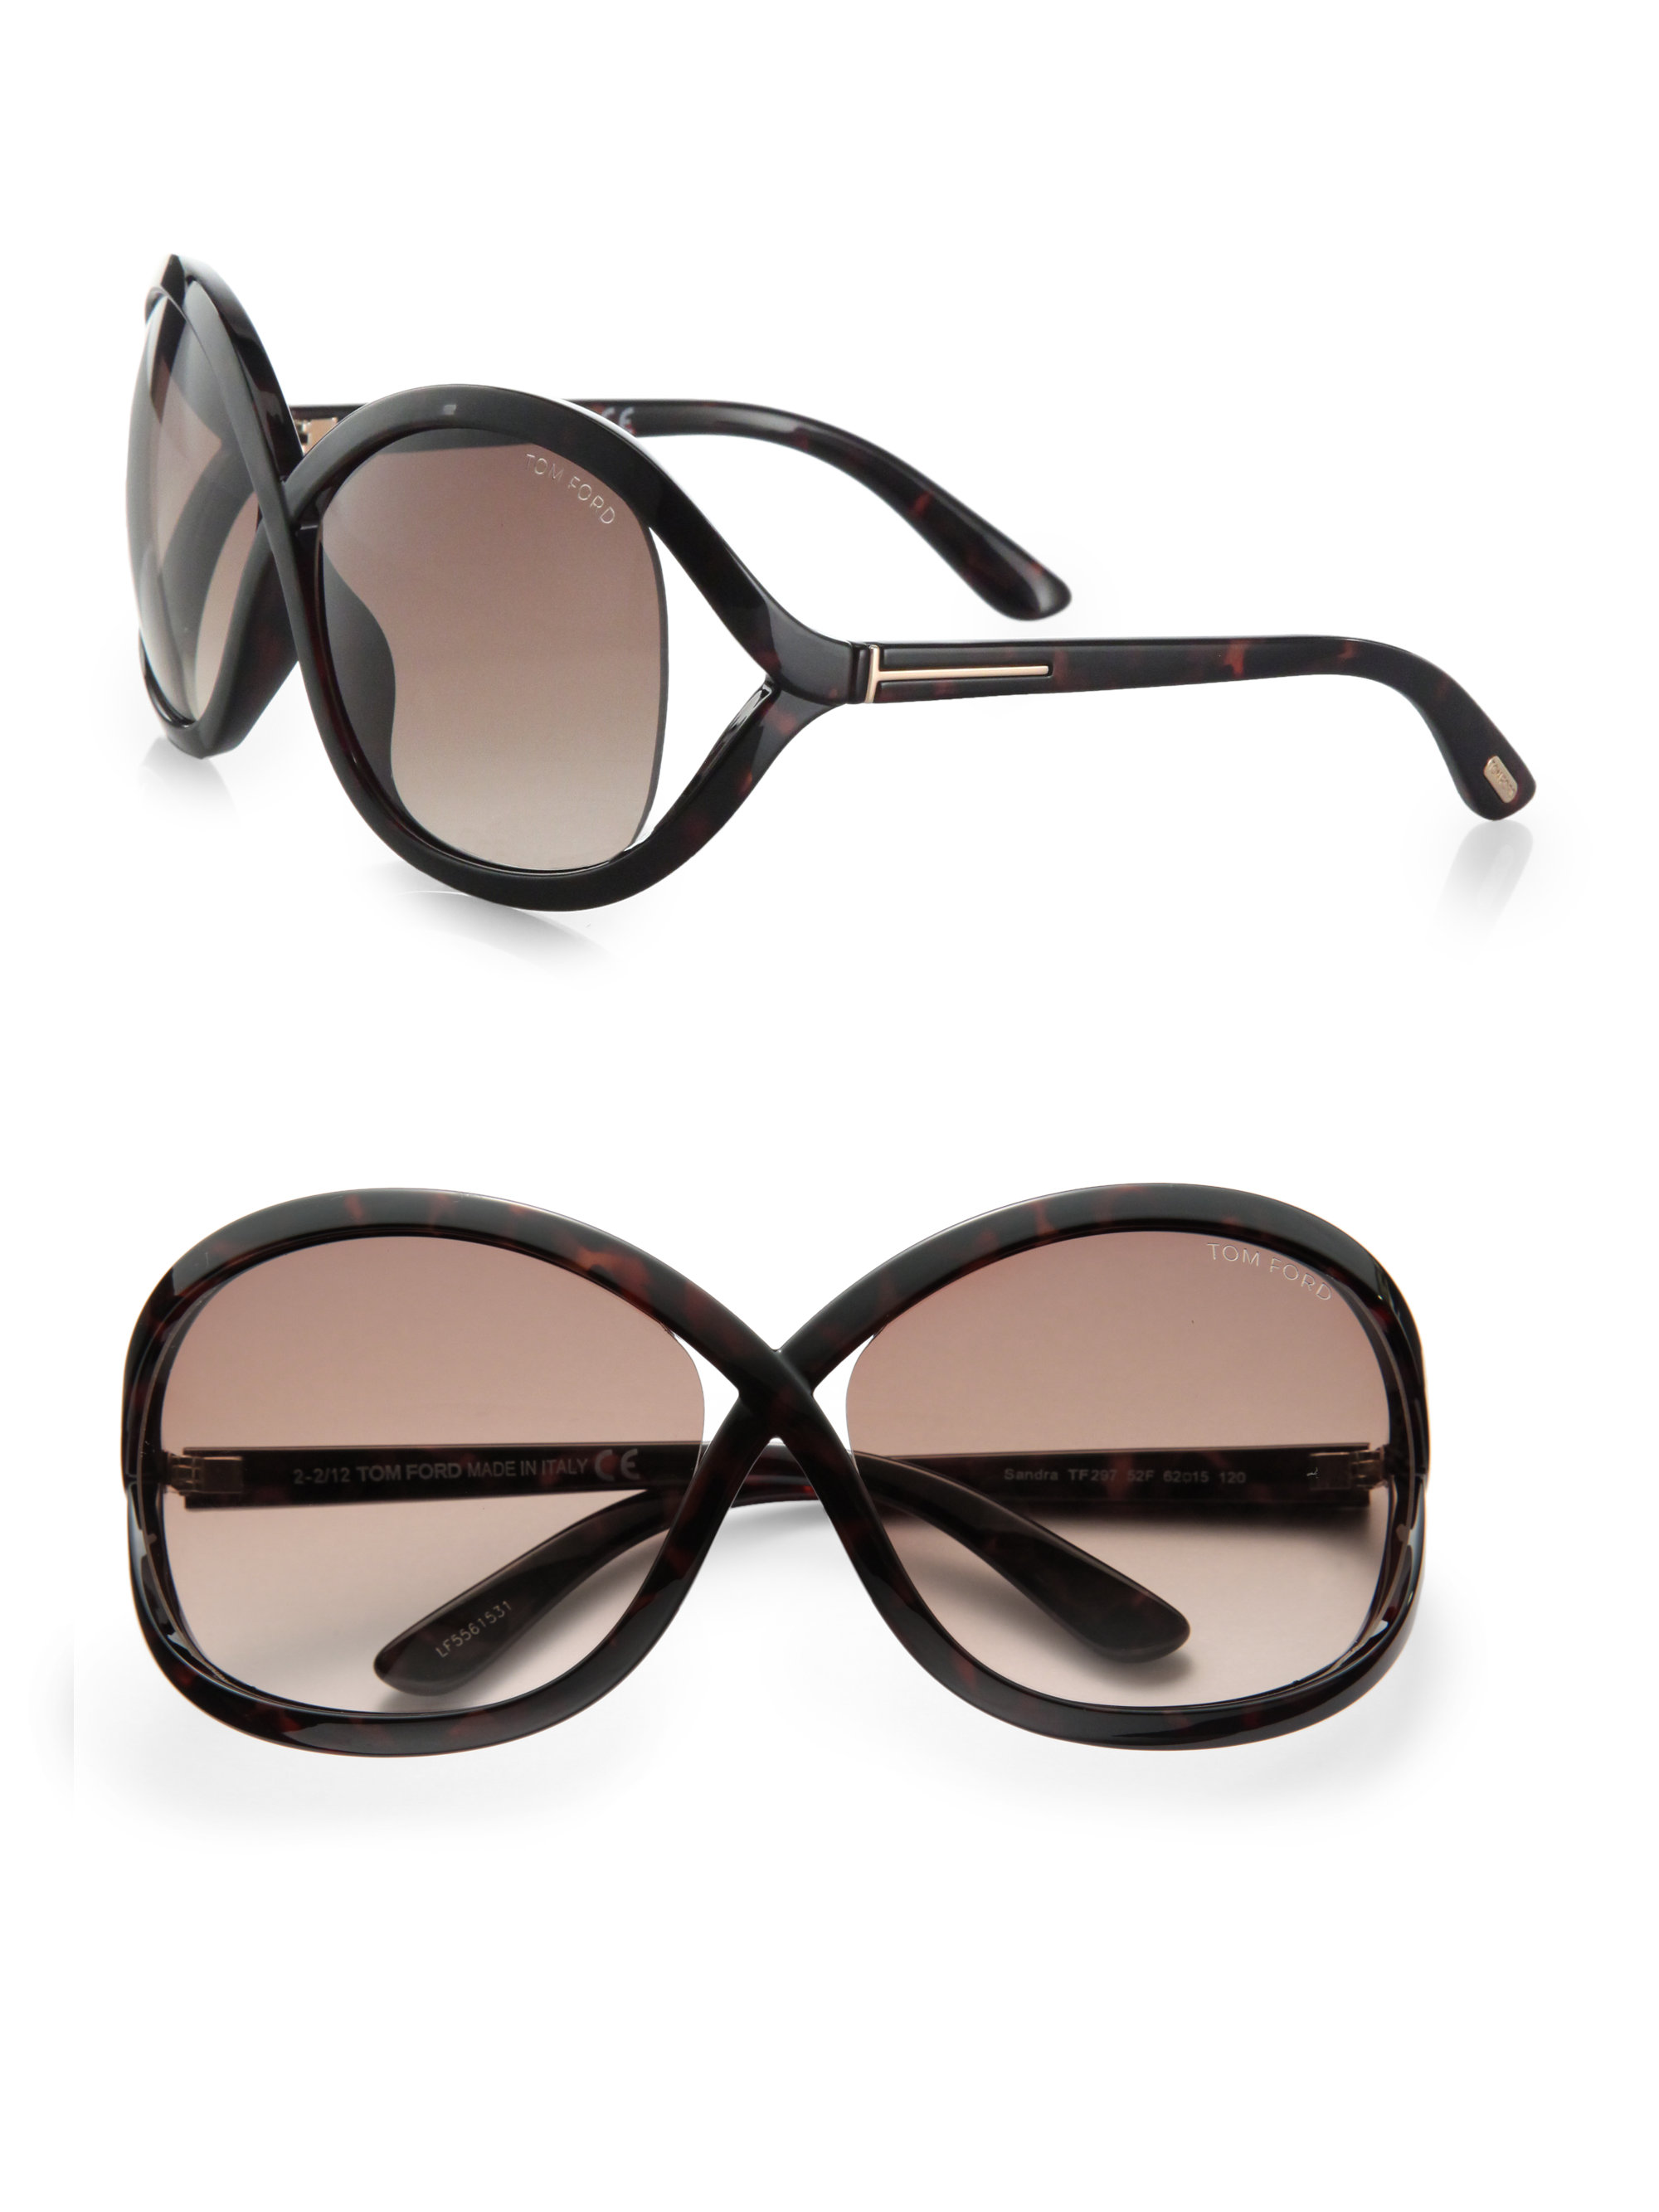 82bda9d69a3f8 Tom Ford Sandra Acetate Square Crossover Sunglasses in Black - Lyst